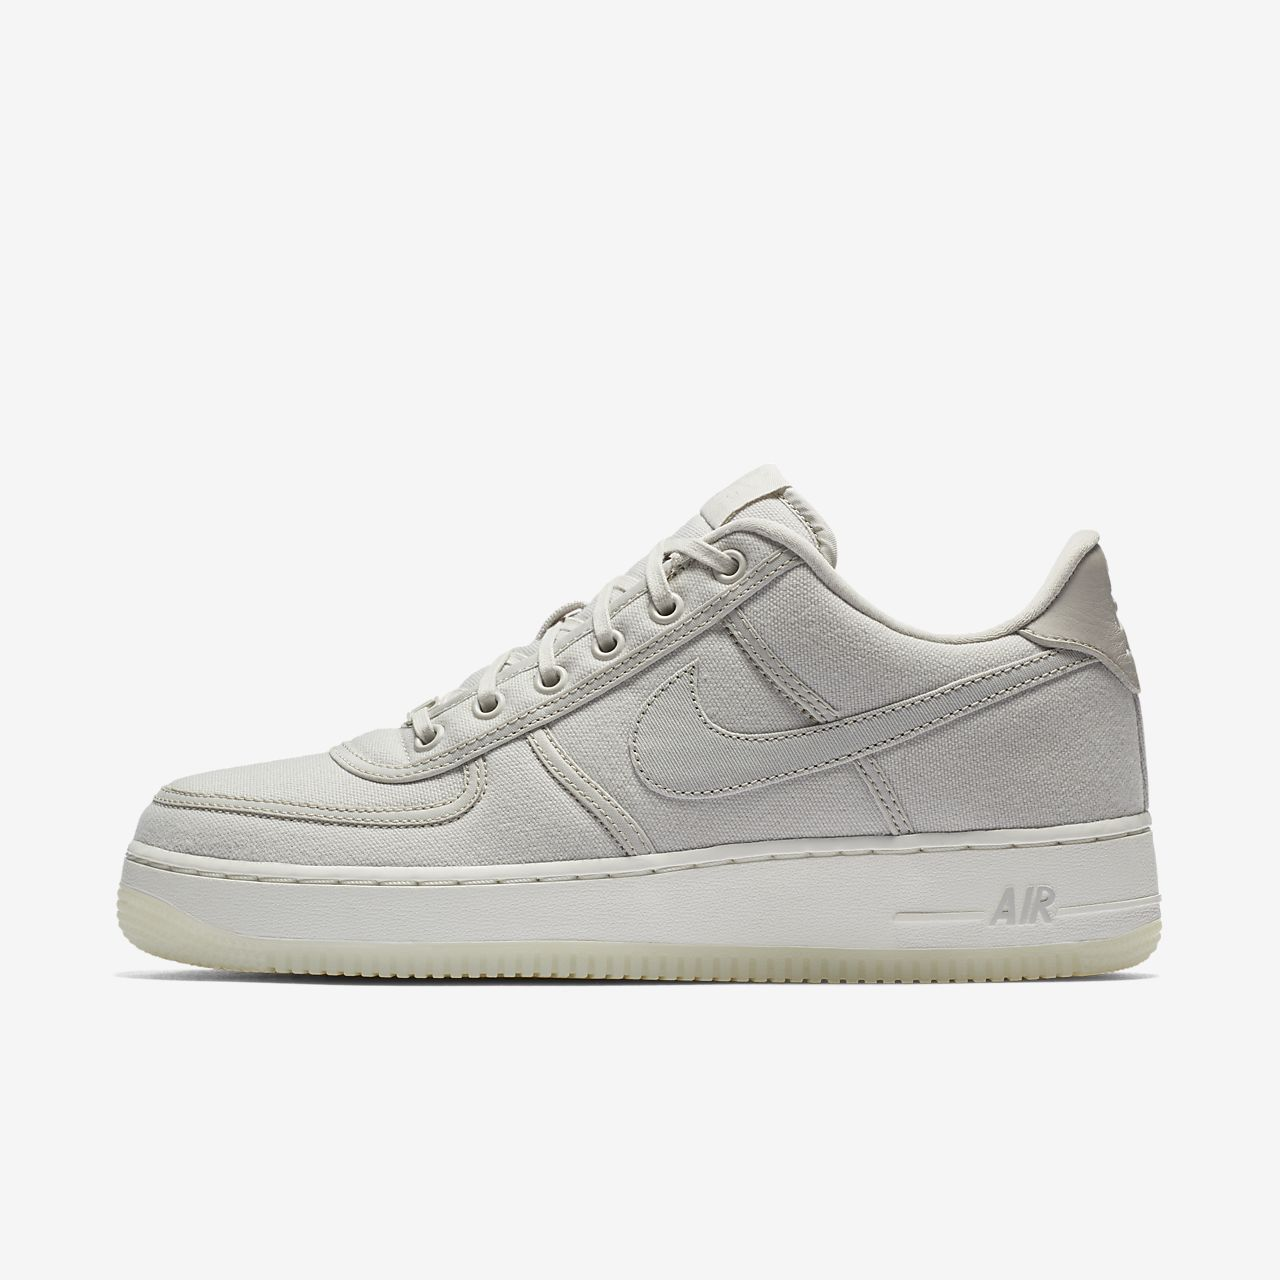 buy online 8847c 11fb3 ... Nike Air Force 1 Low Retro QS Men s Shoe